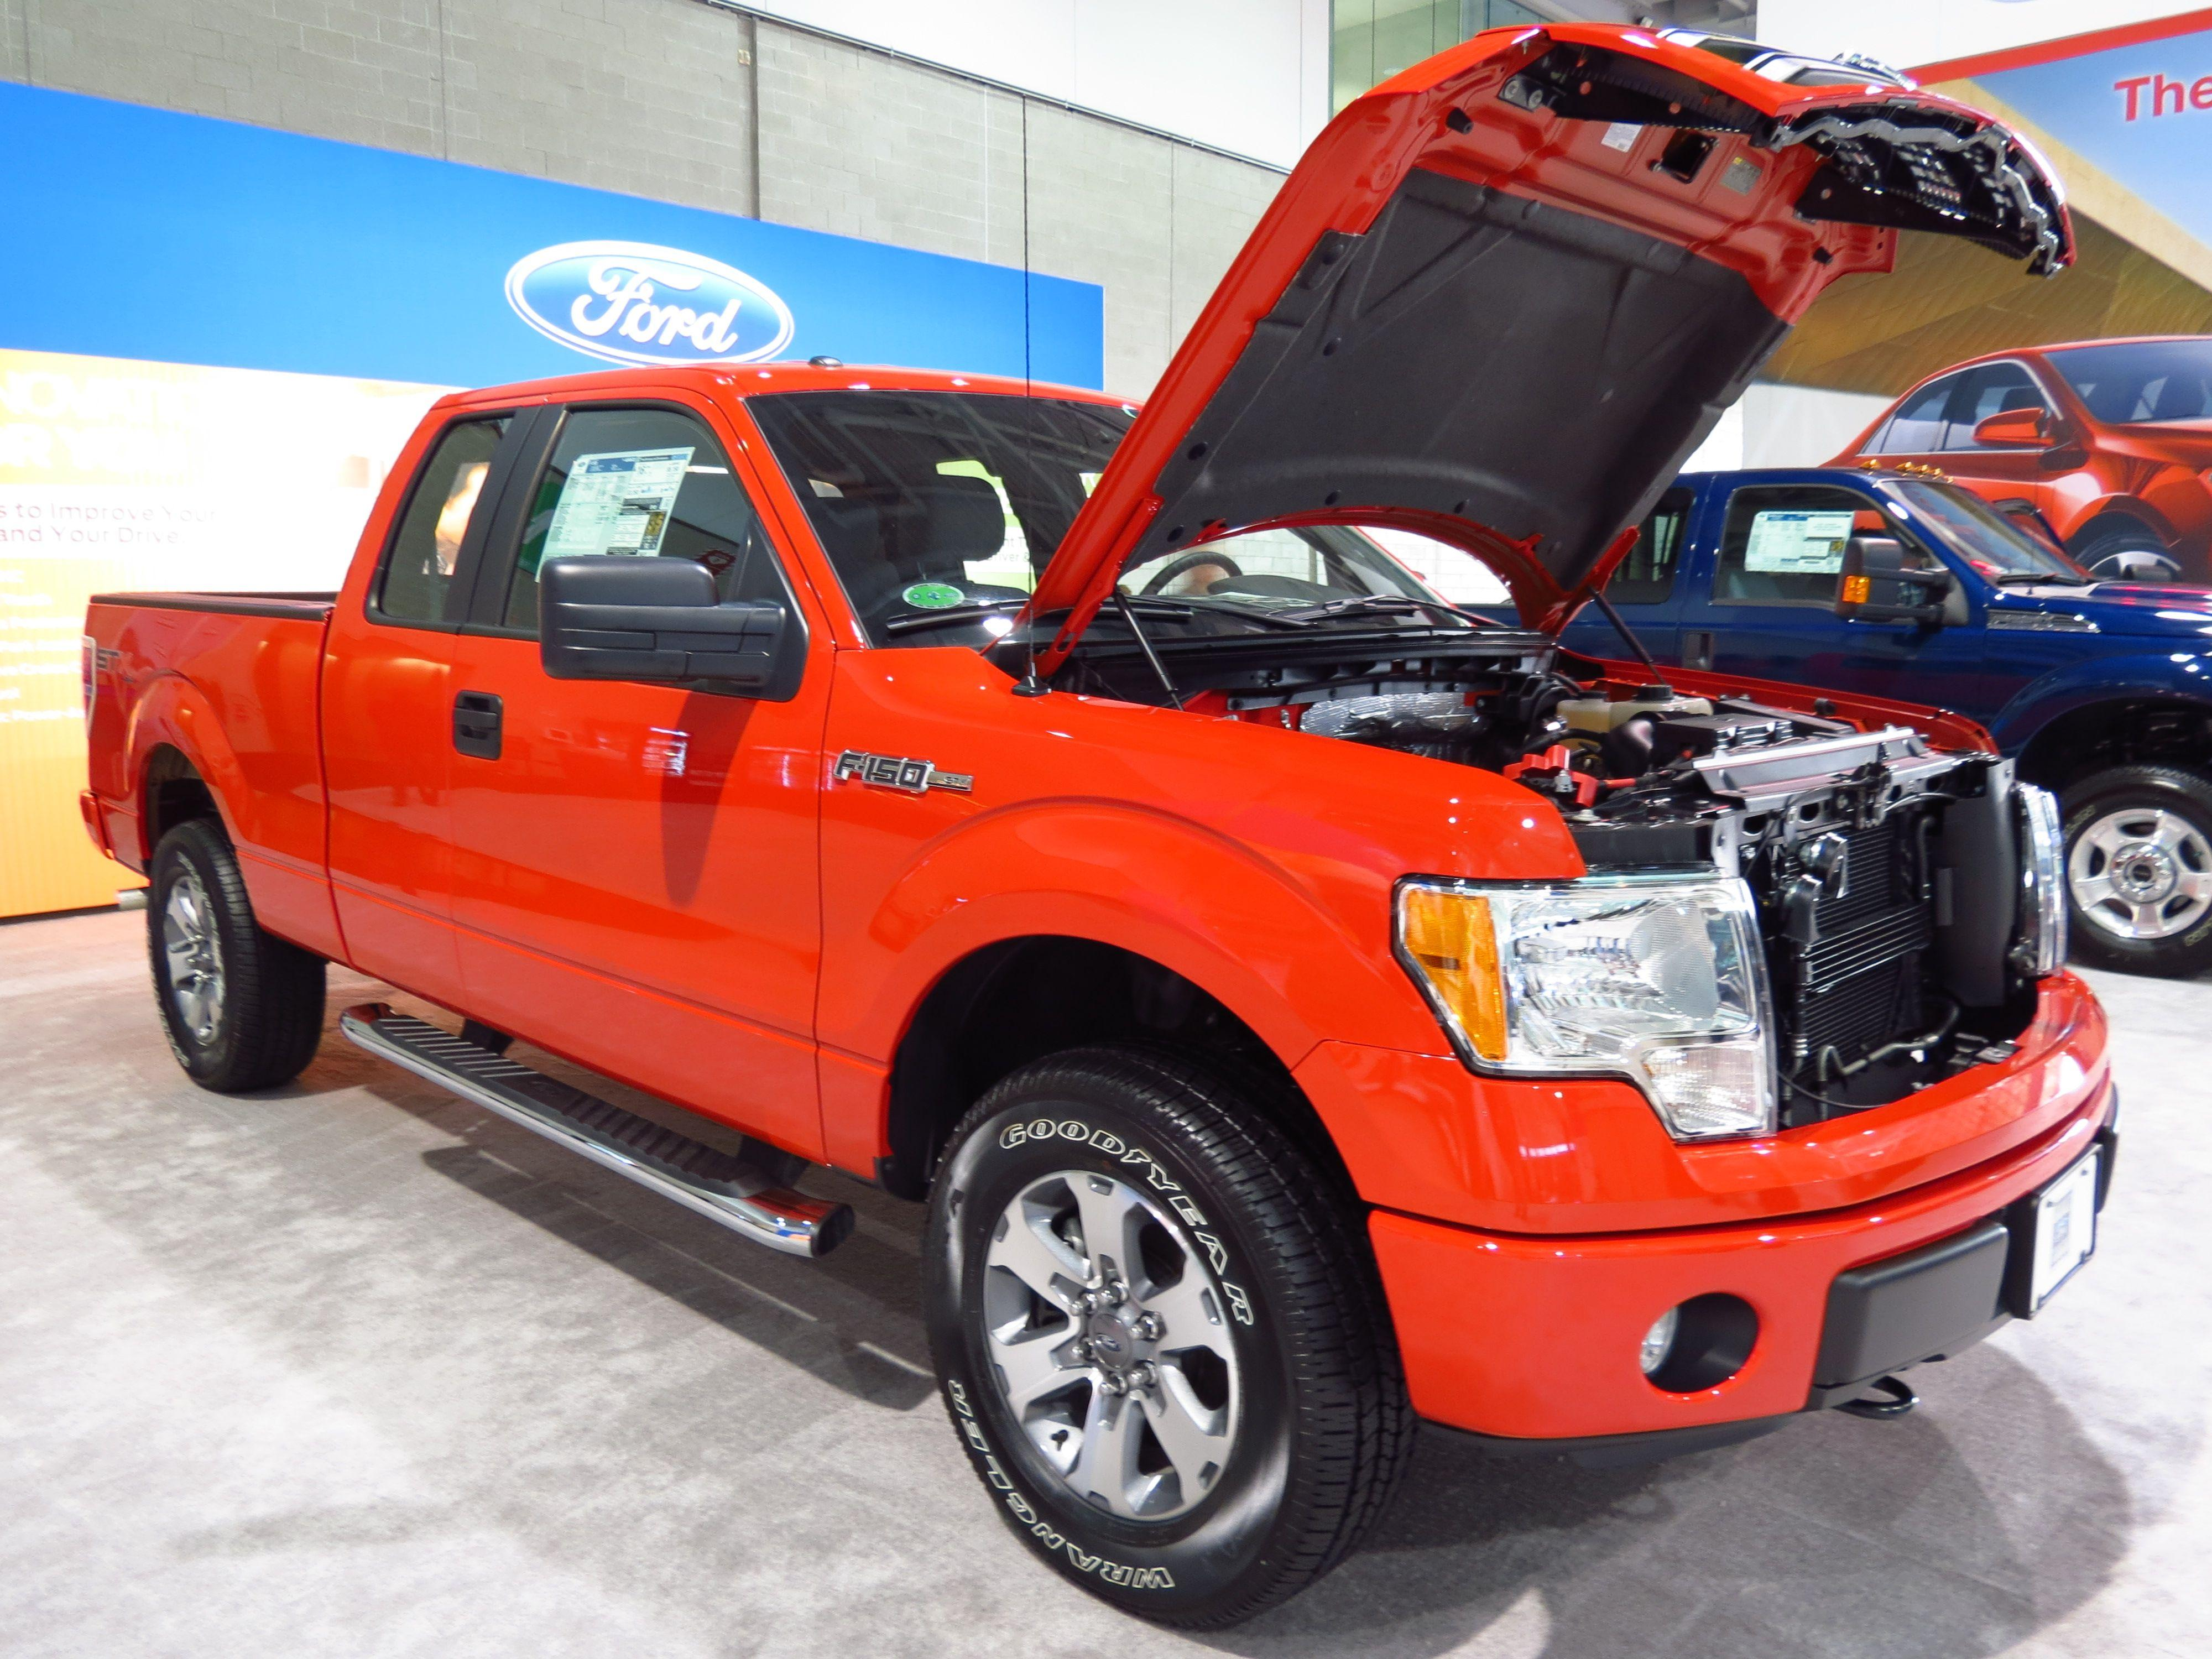 Where to service your Ford in Upland, CA?